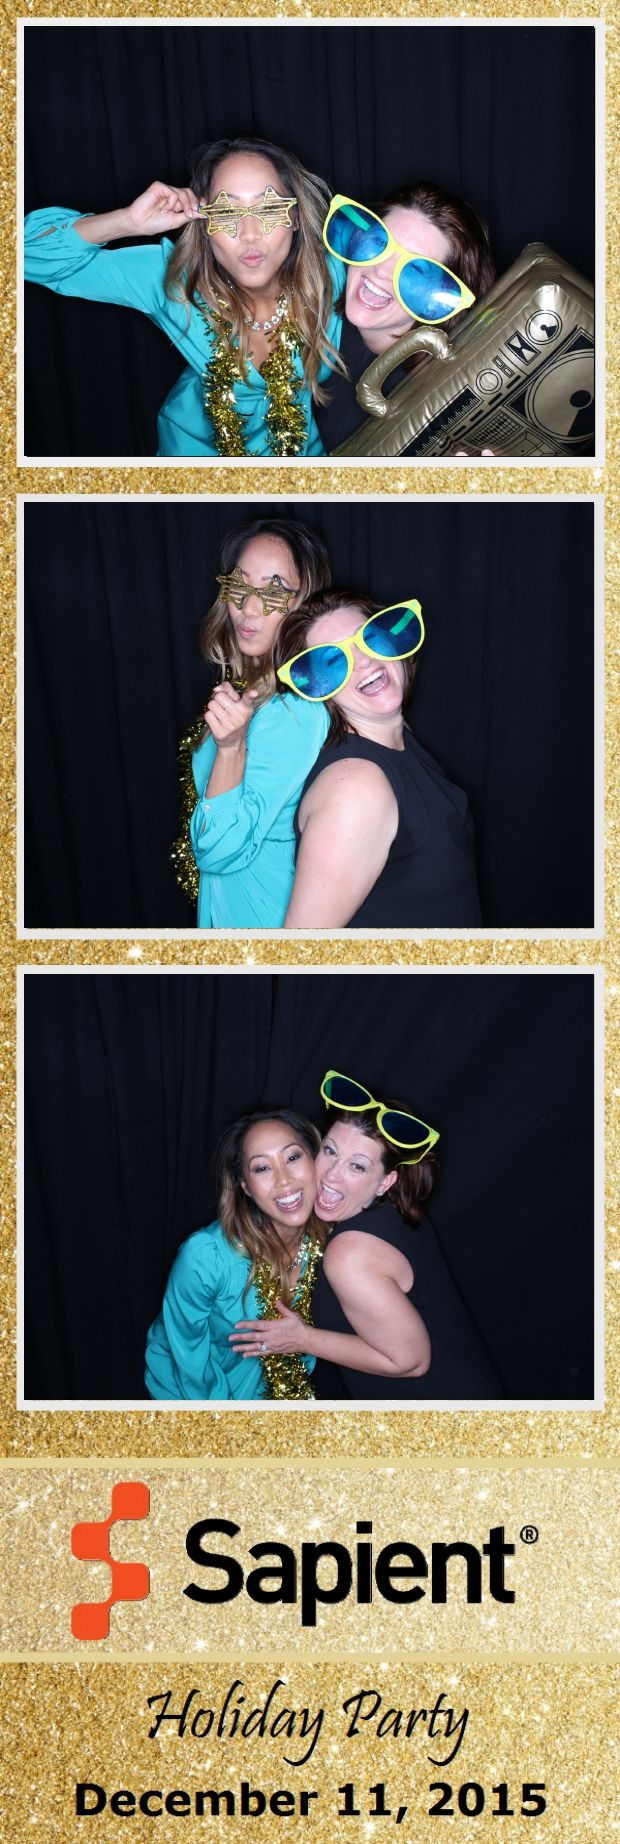 Guest House Events Photo Booth Sapient Holiday Party (76).jpg